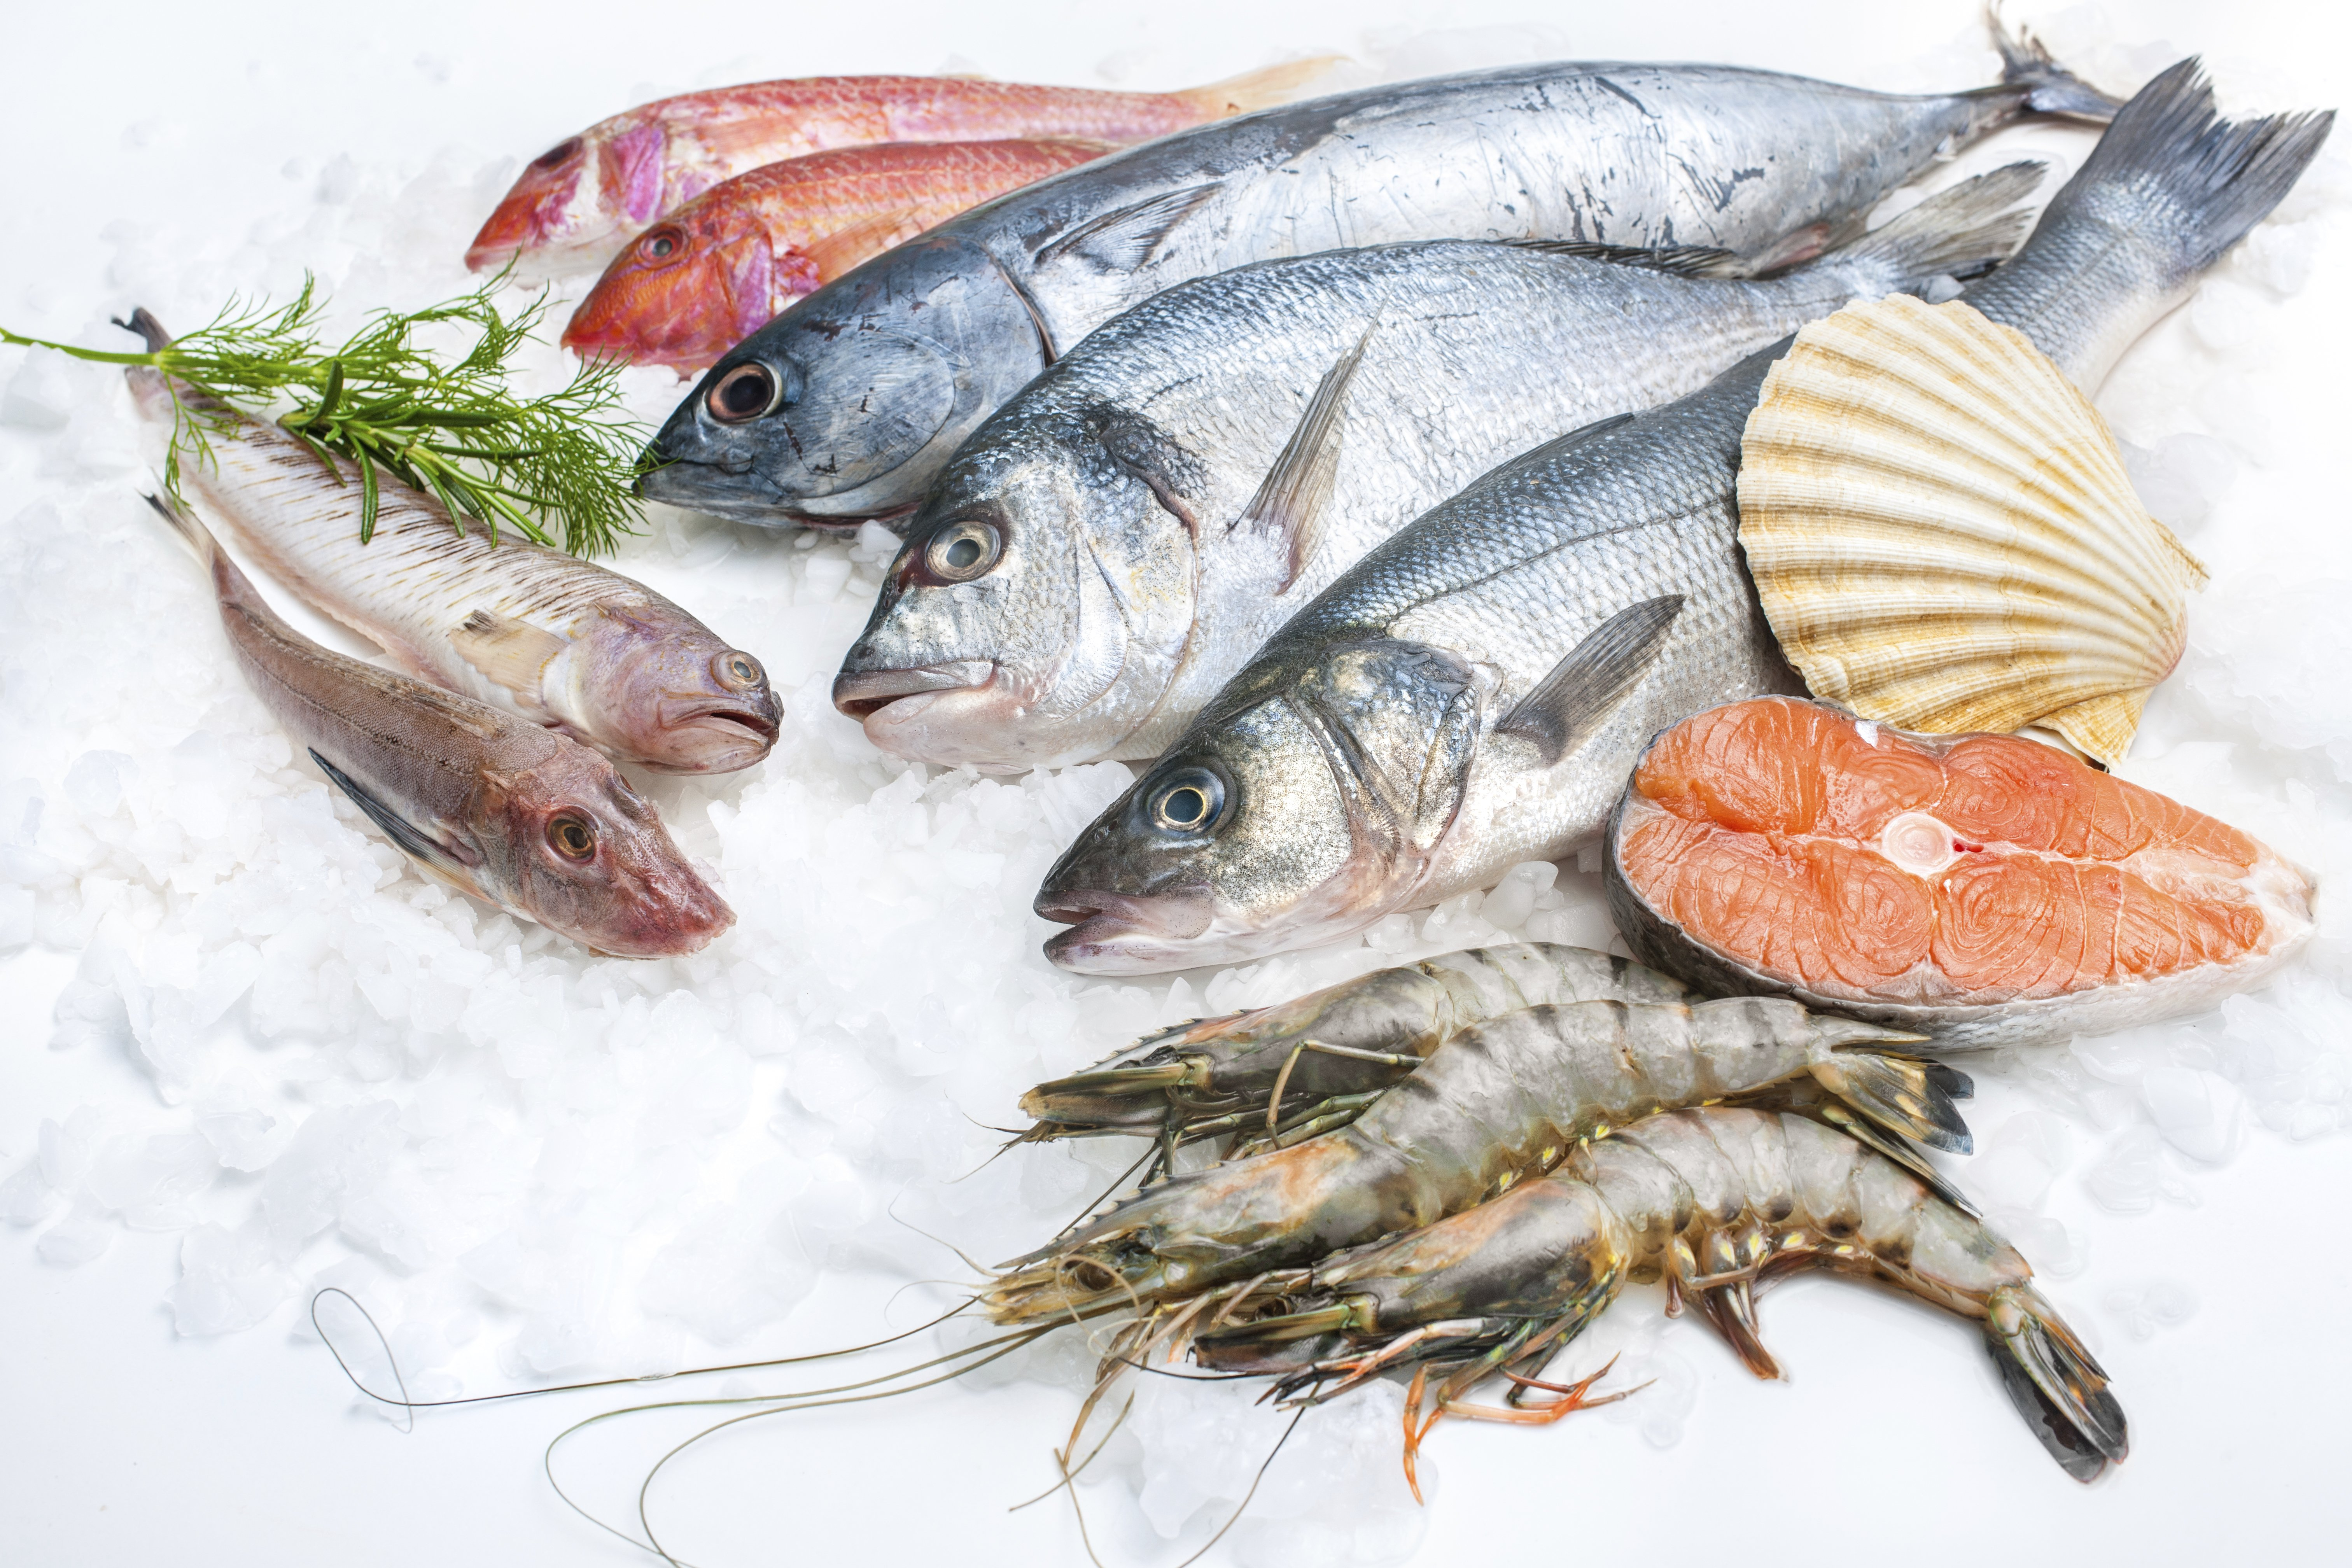 Seafood food fish sea ocean wallpaper 6048x4032 722640 for What is fish food made of